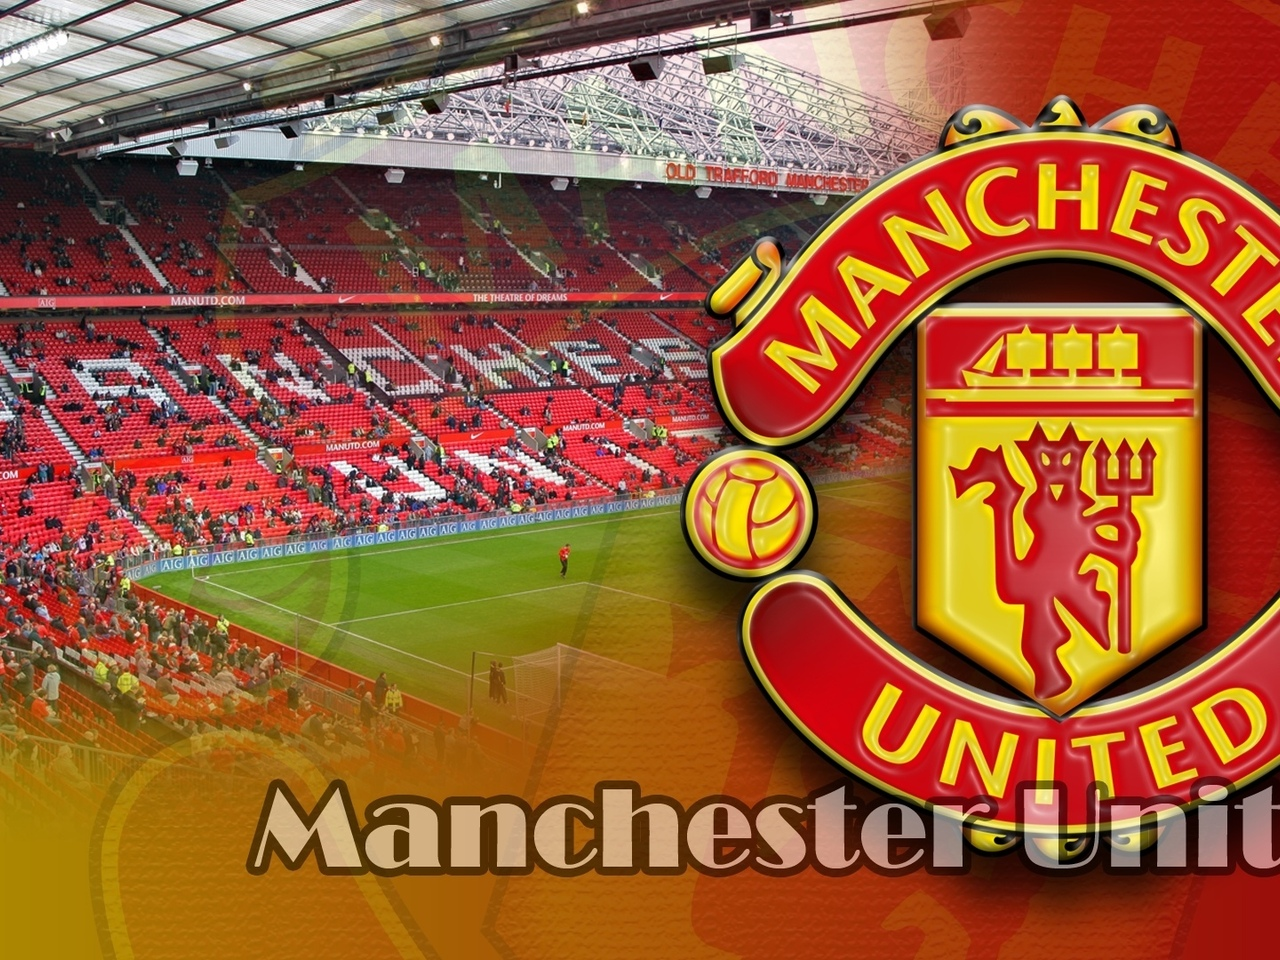 manchester united, manchester, old trafford, stadium